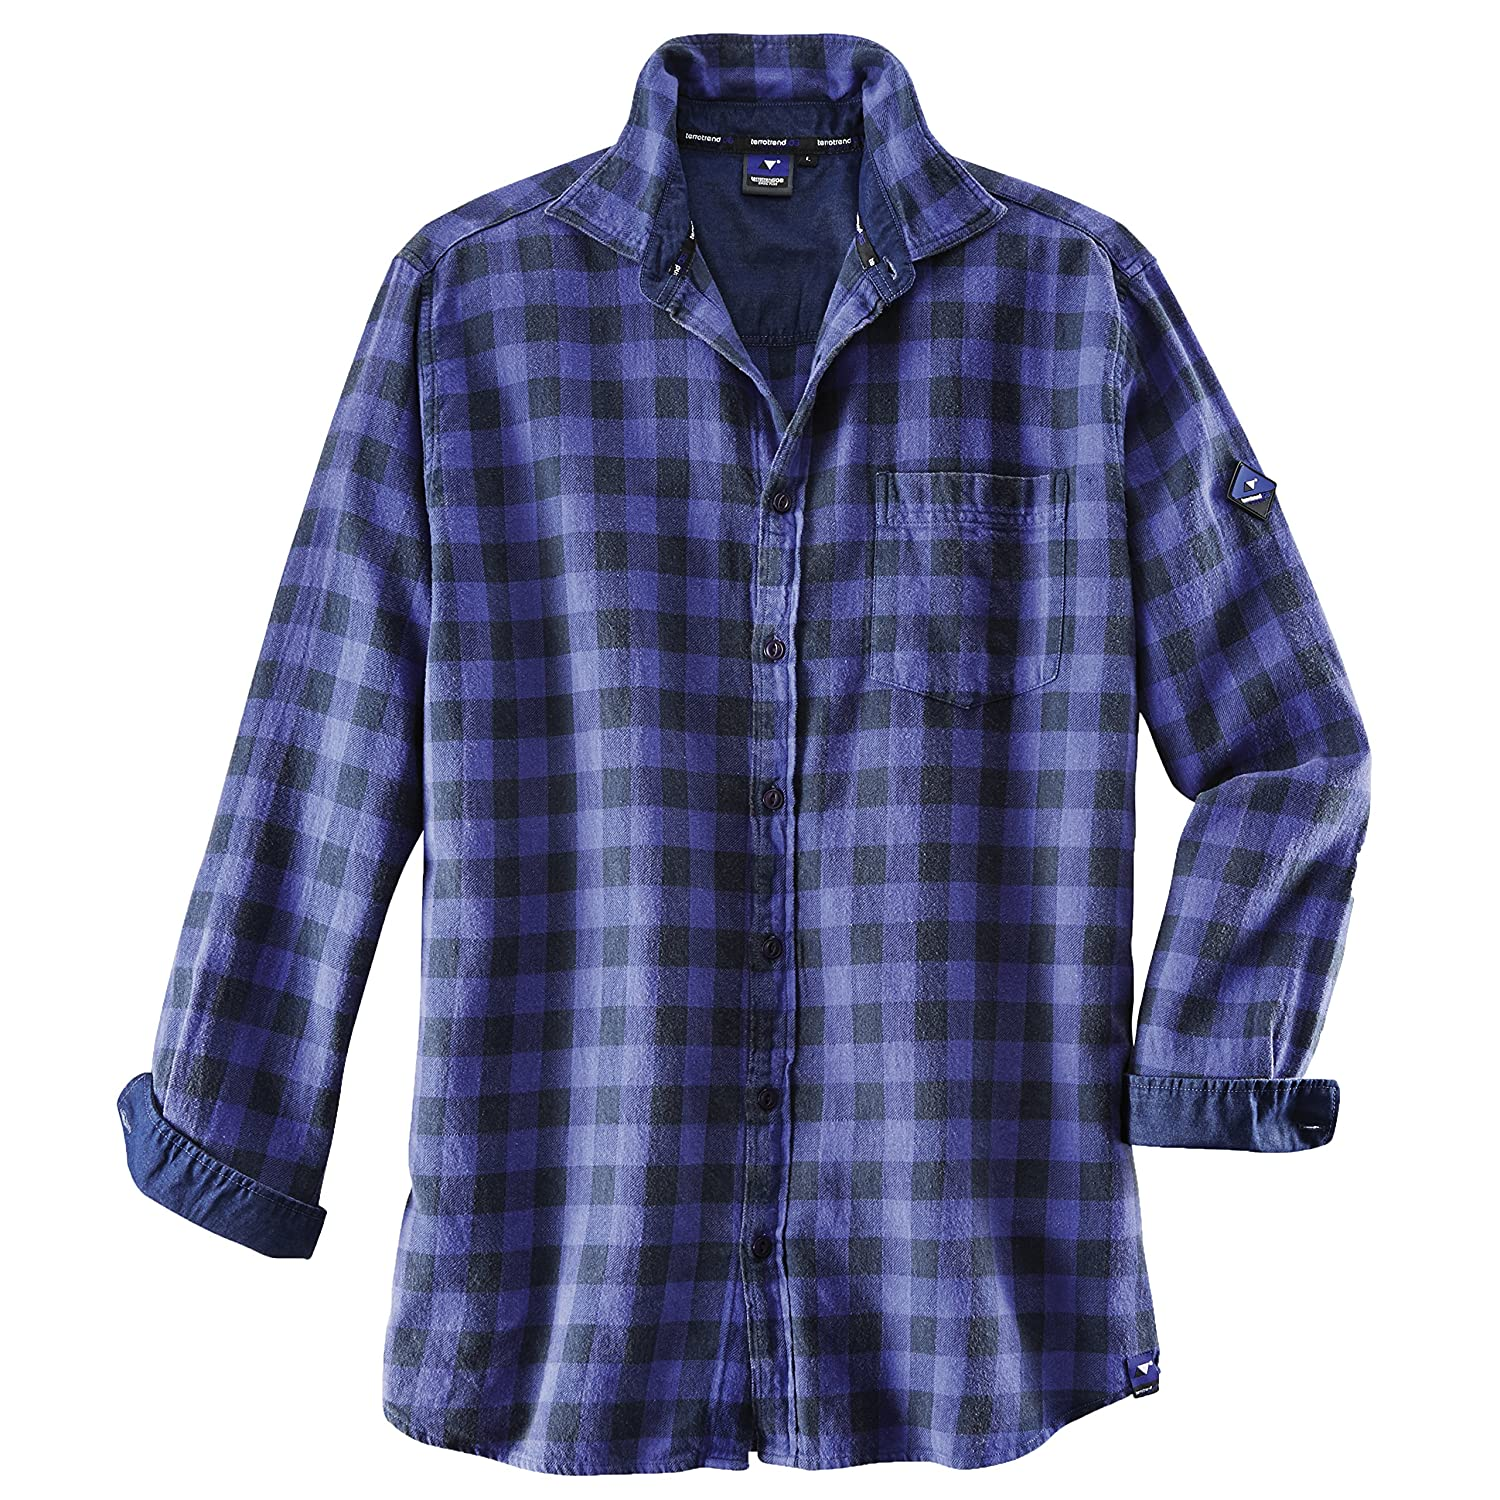 / Royal blau//anthrazit Terratrend Job 10371-xl-7264/ Gr/ö/ße X-Large Basic Plus Herren Shirt/